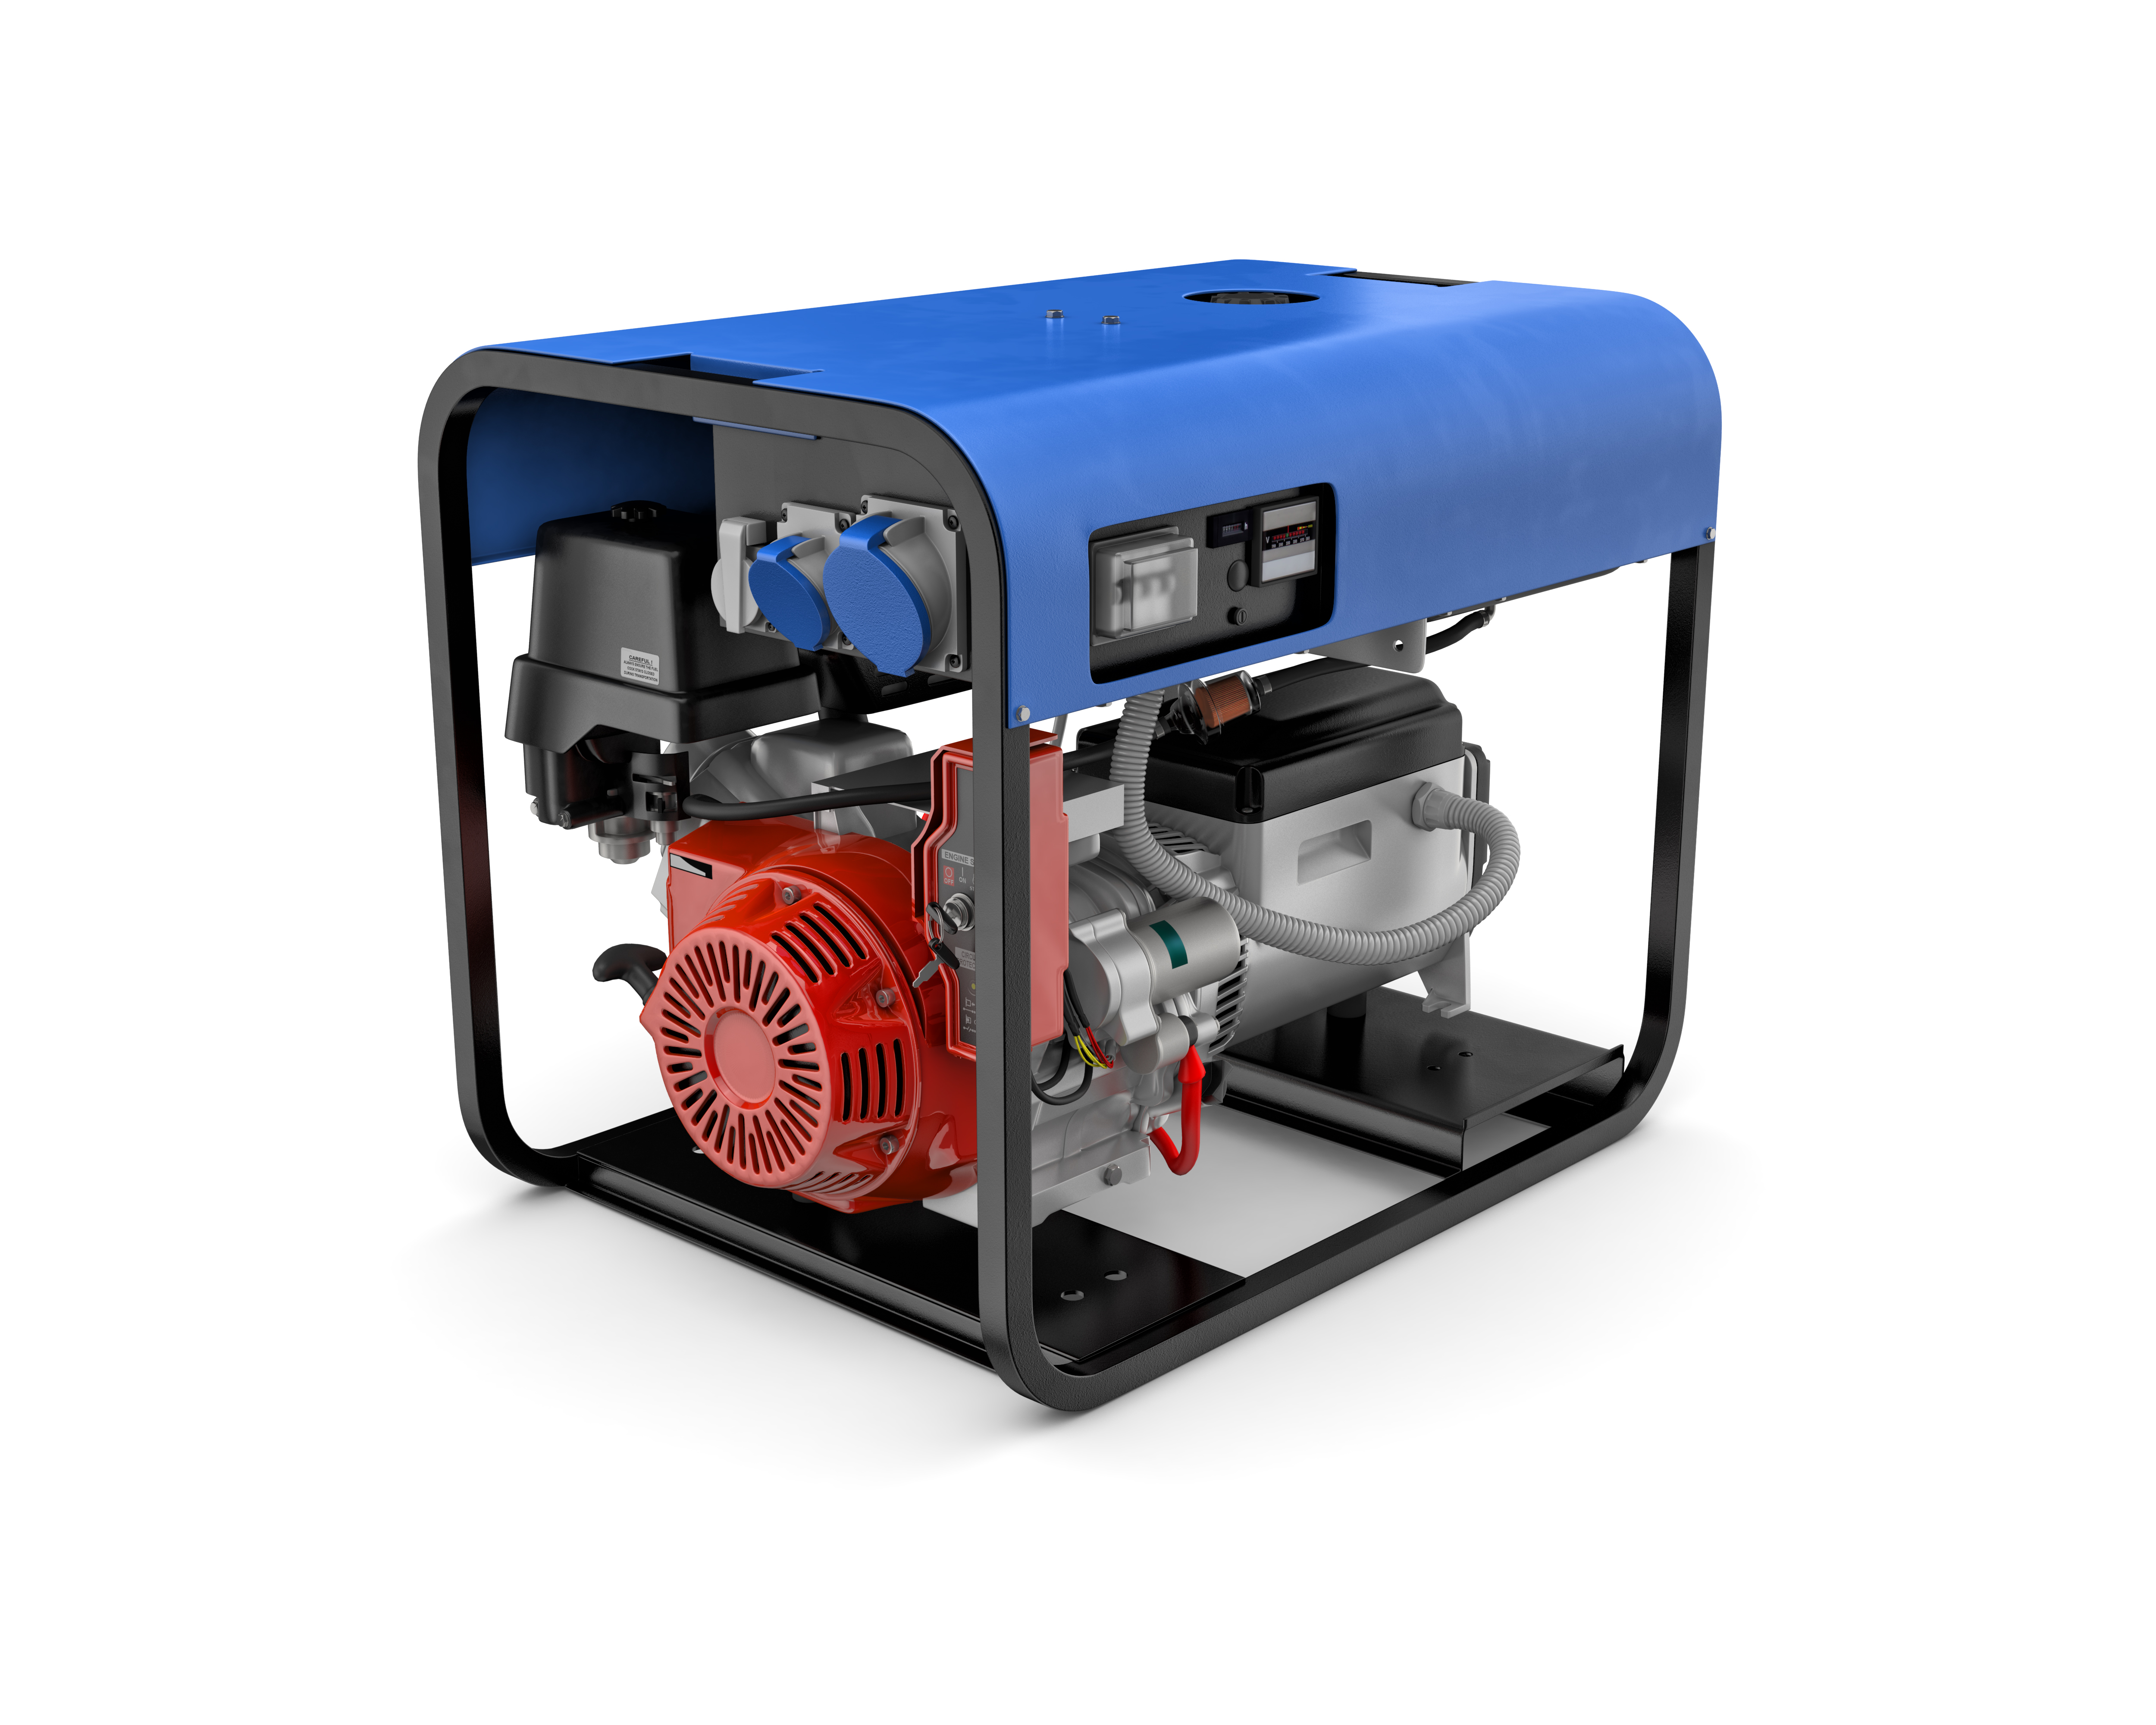 power generator is a source of electrical power when main power fails